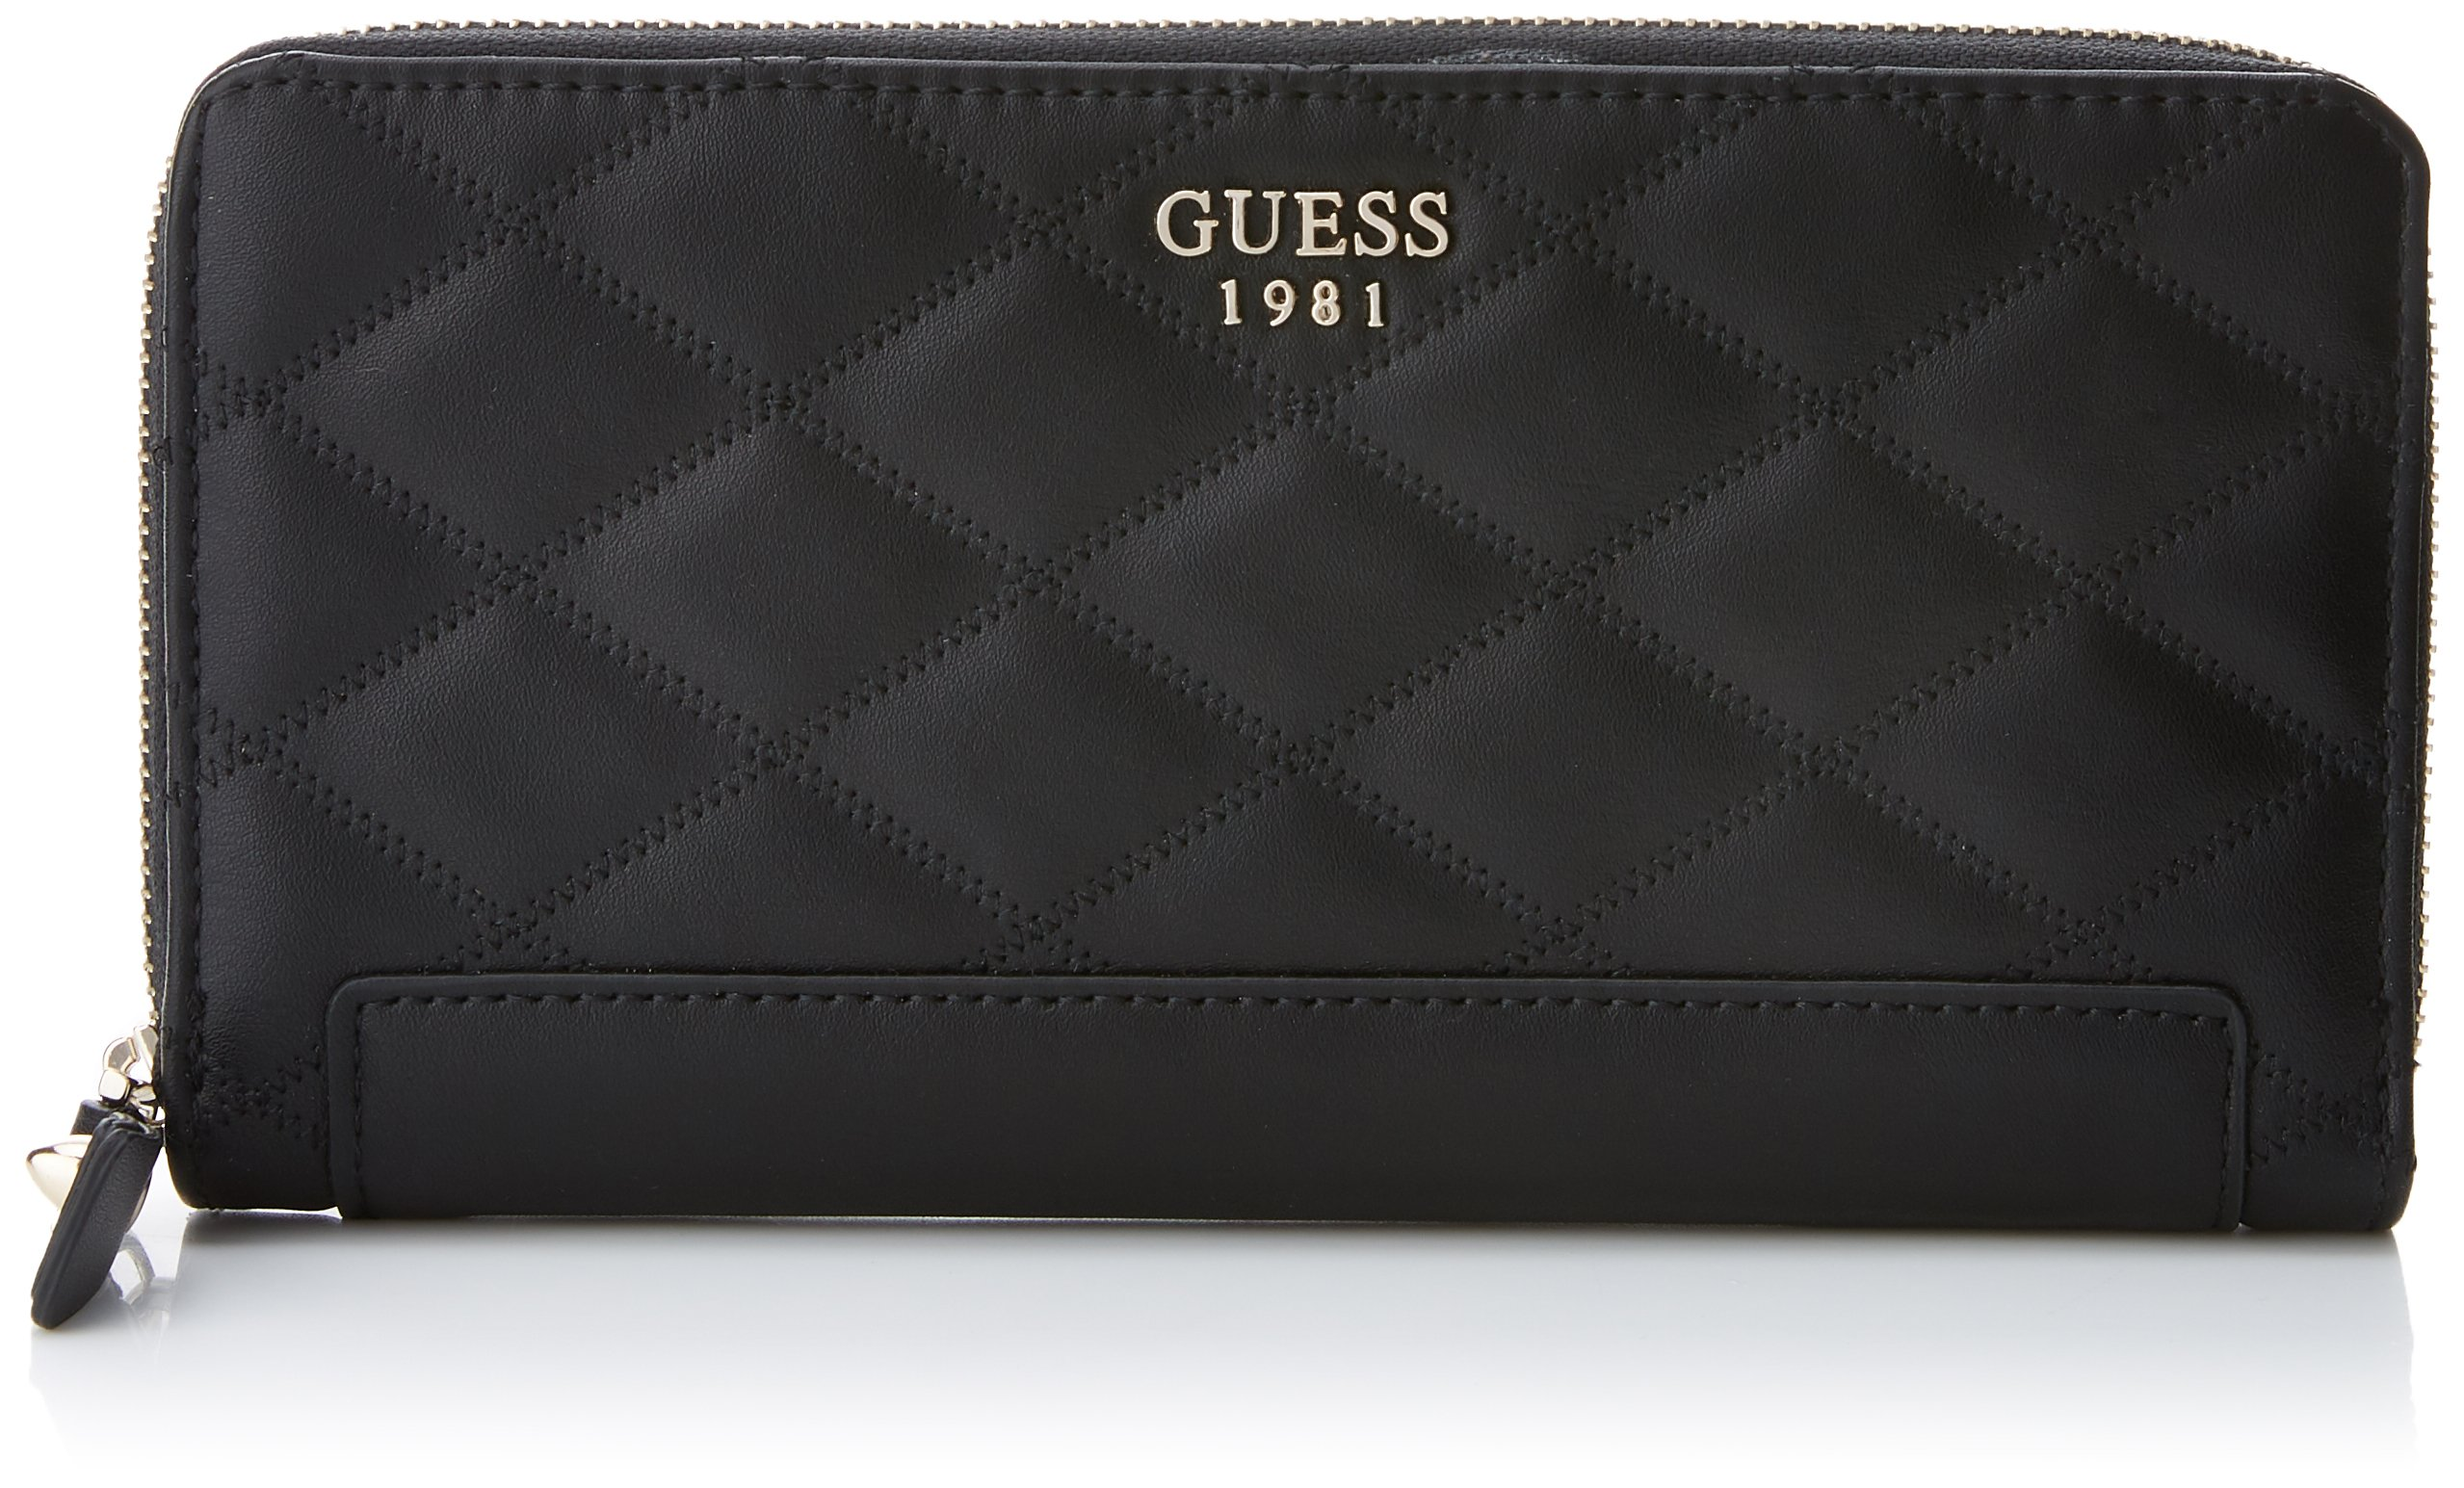 GUESS Penelope Quilted Check Organizer Wallet Clutch Bag